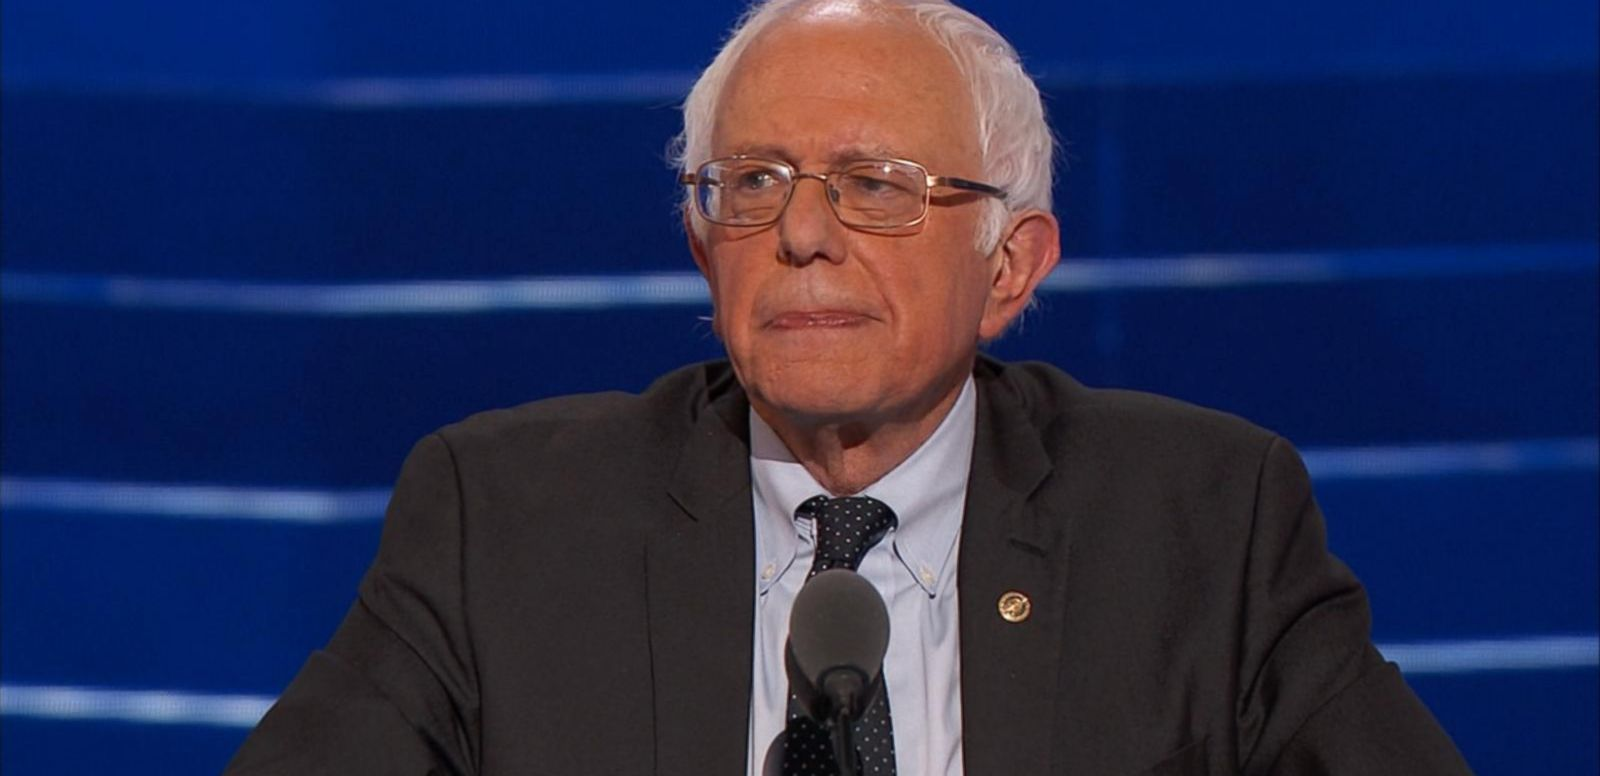 VIDEO: Bernie Sanders: 'Hillary Clinton Must Become the Next President'